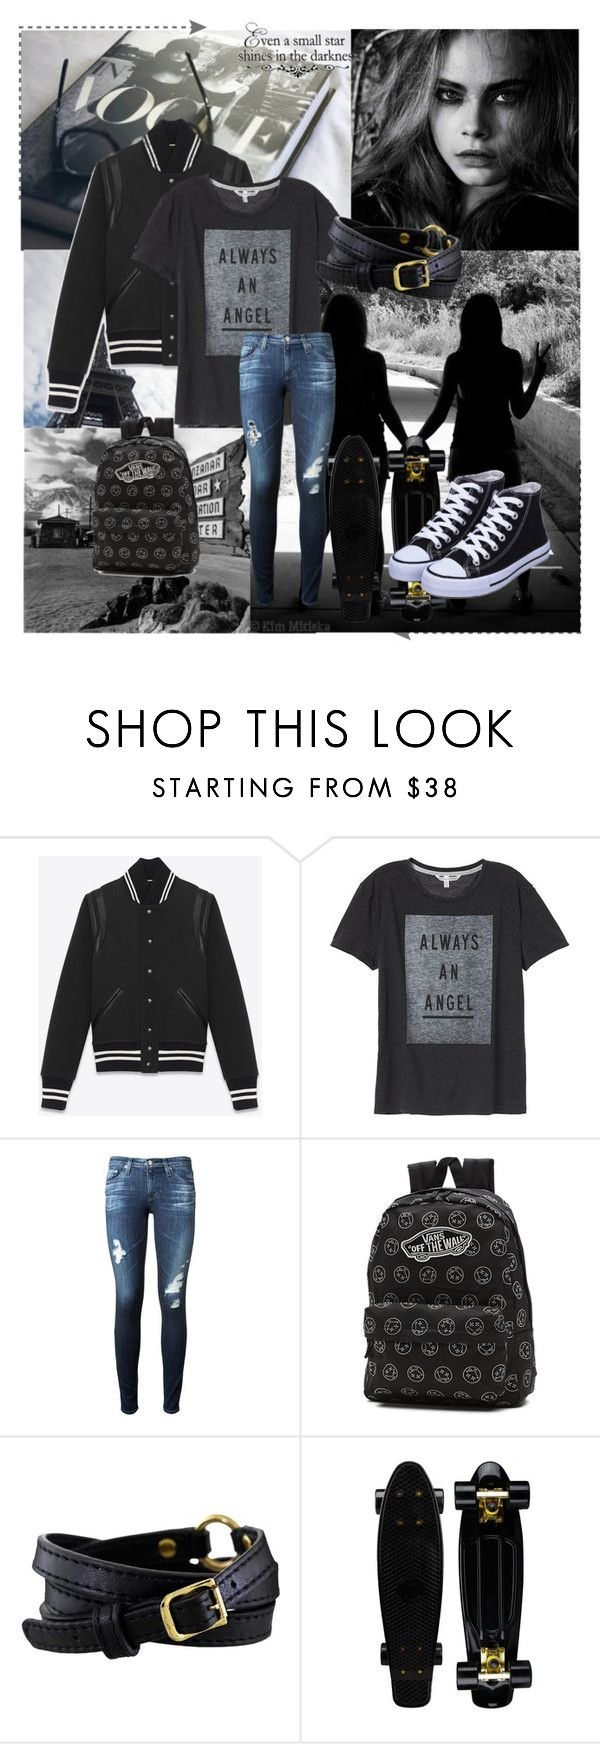 """""""Skater Chic"""" by inspiration-center ❤ liked on Polyvore featuring Yves Saint Laurent, AG Adriano Goldschmied, Vans, Pacha and WALL"""